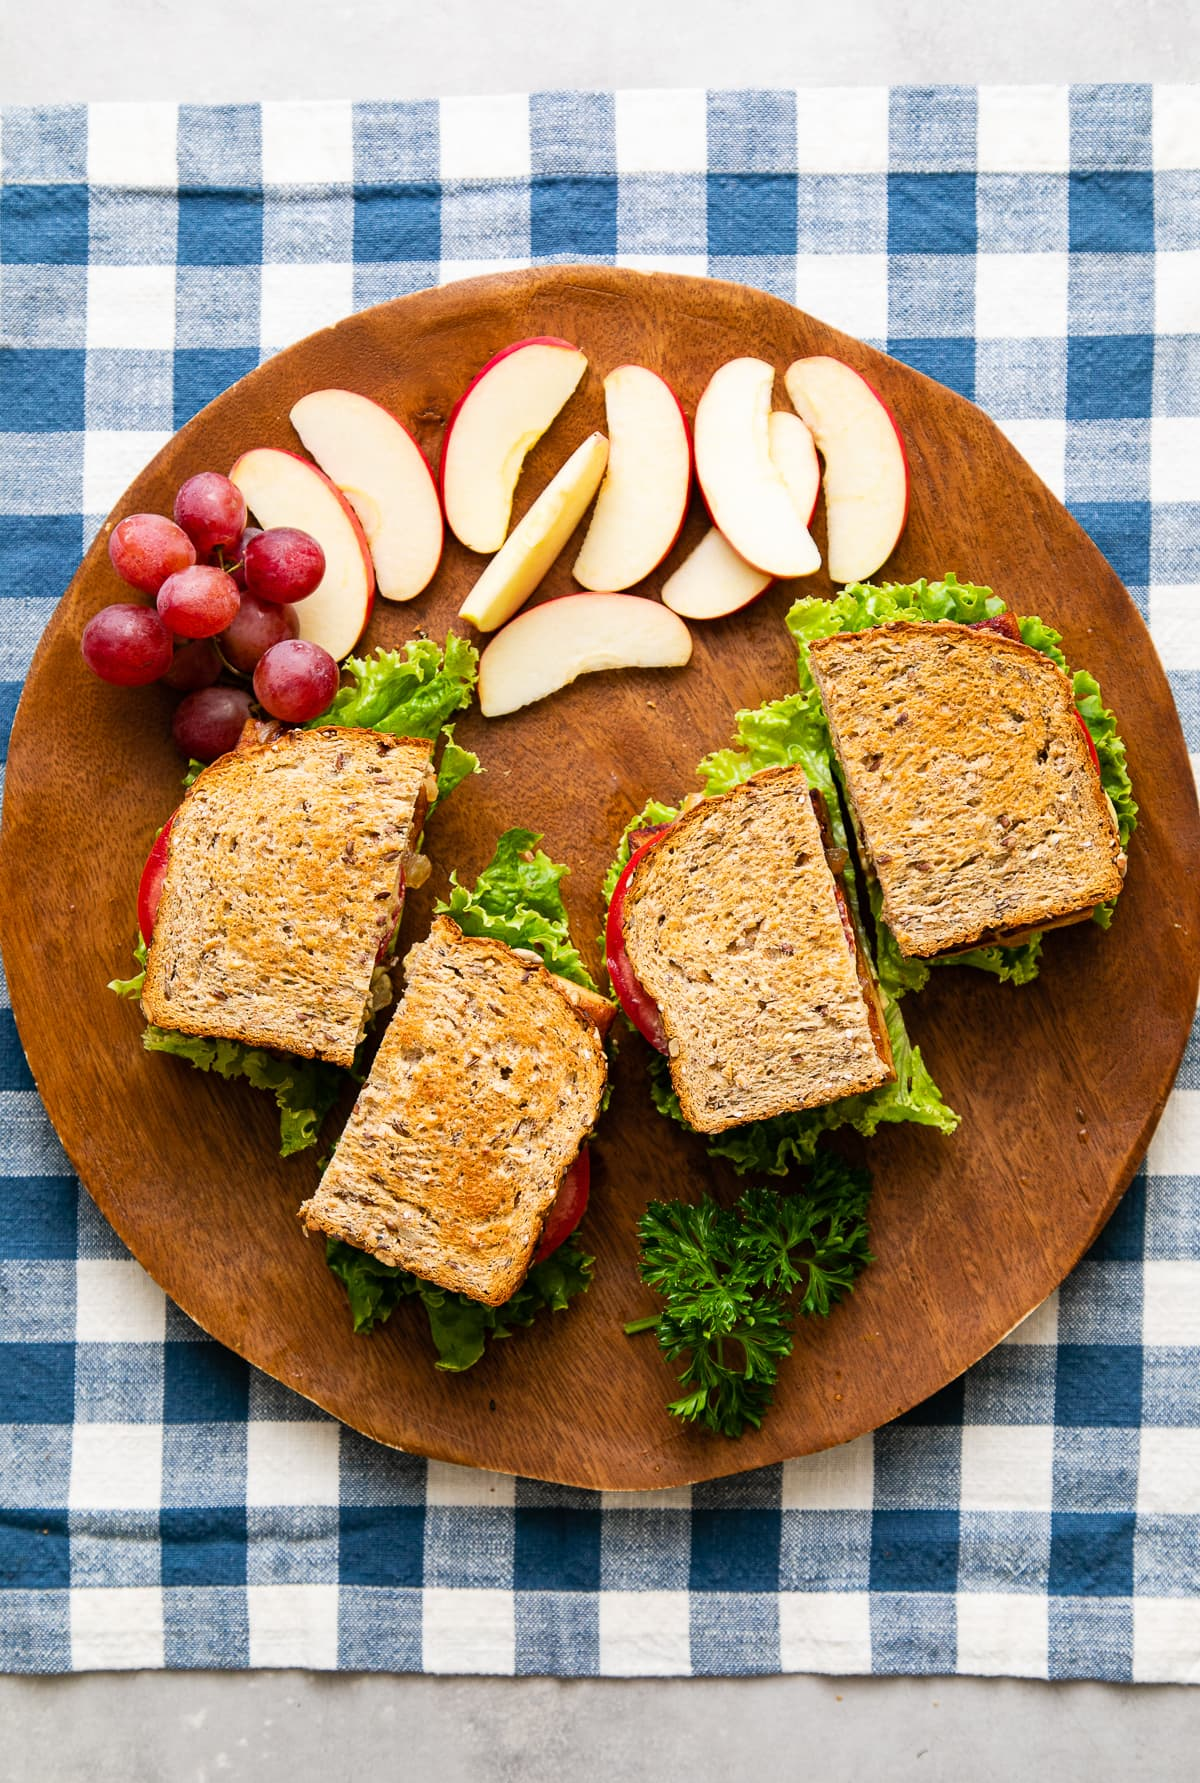 top down view of tofu sandwiches sliced in half on wooden tray with fruit.